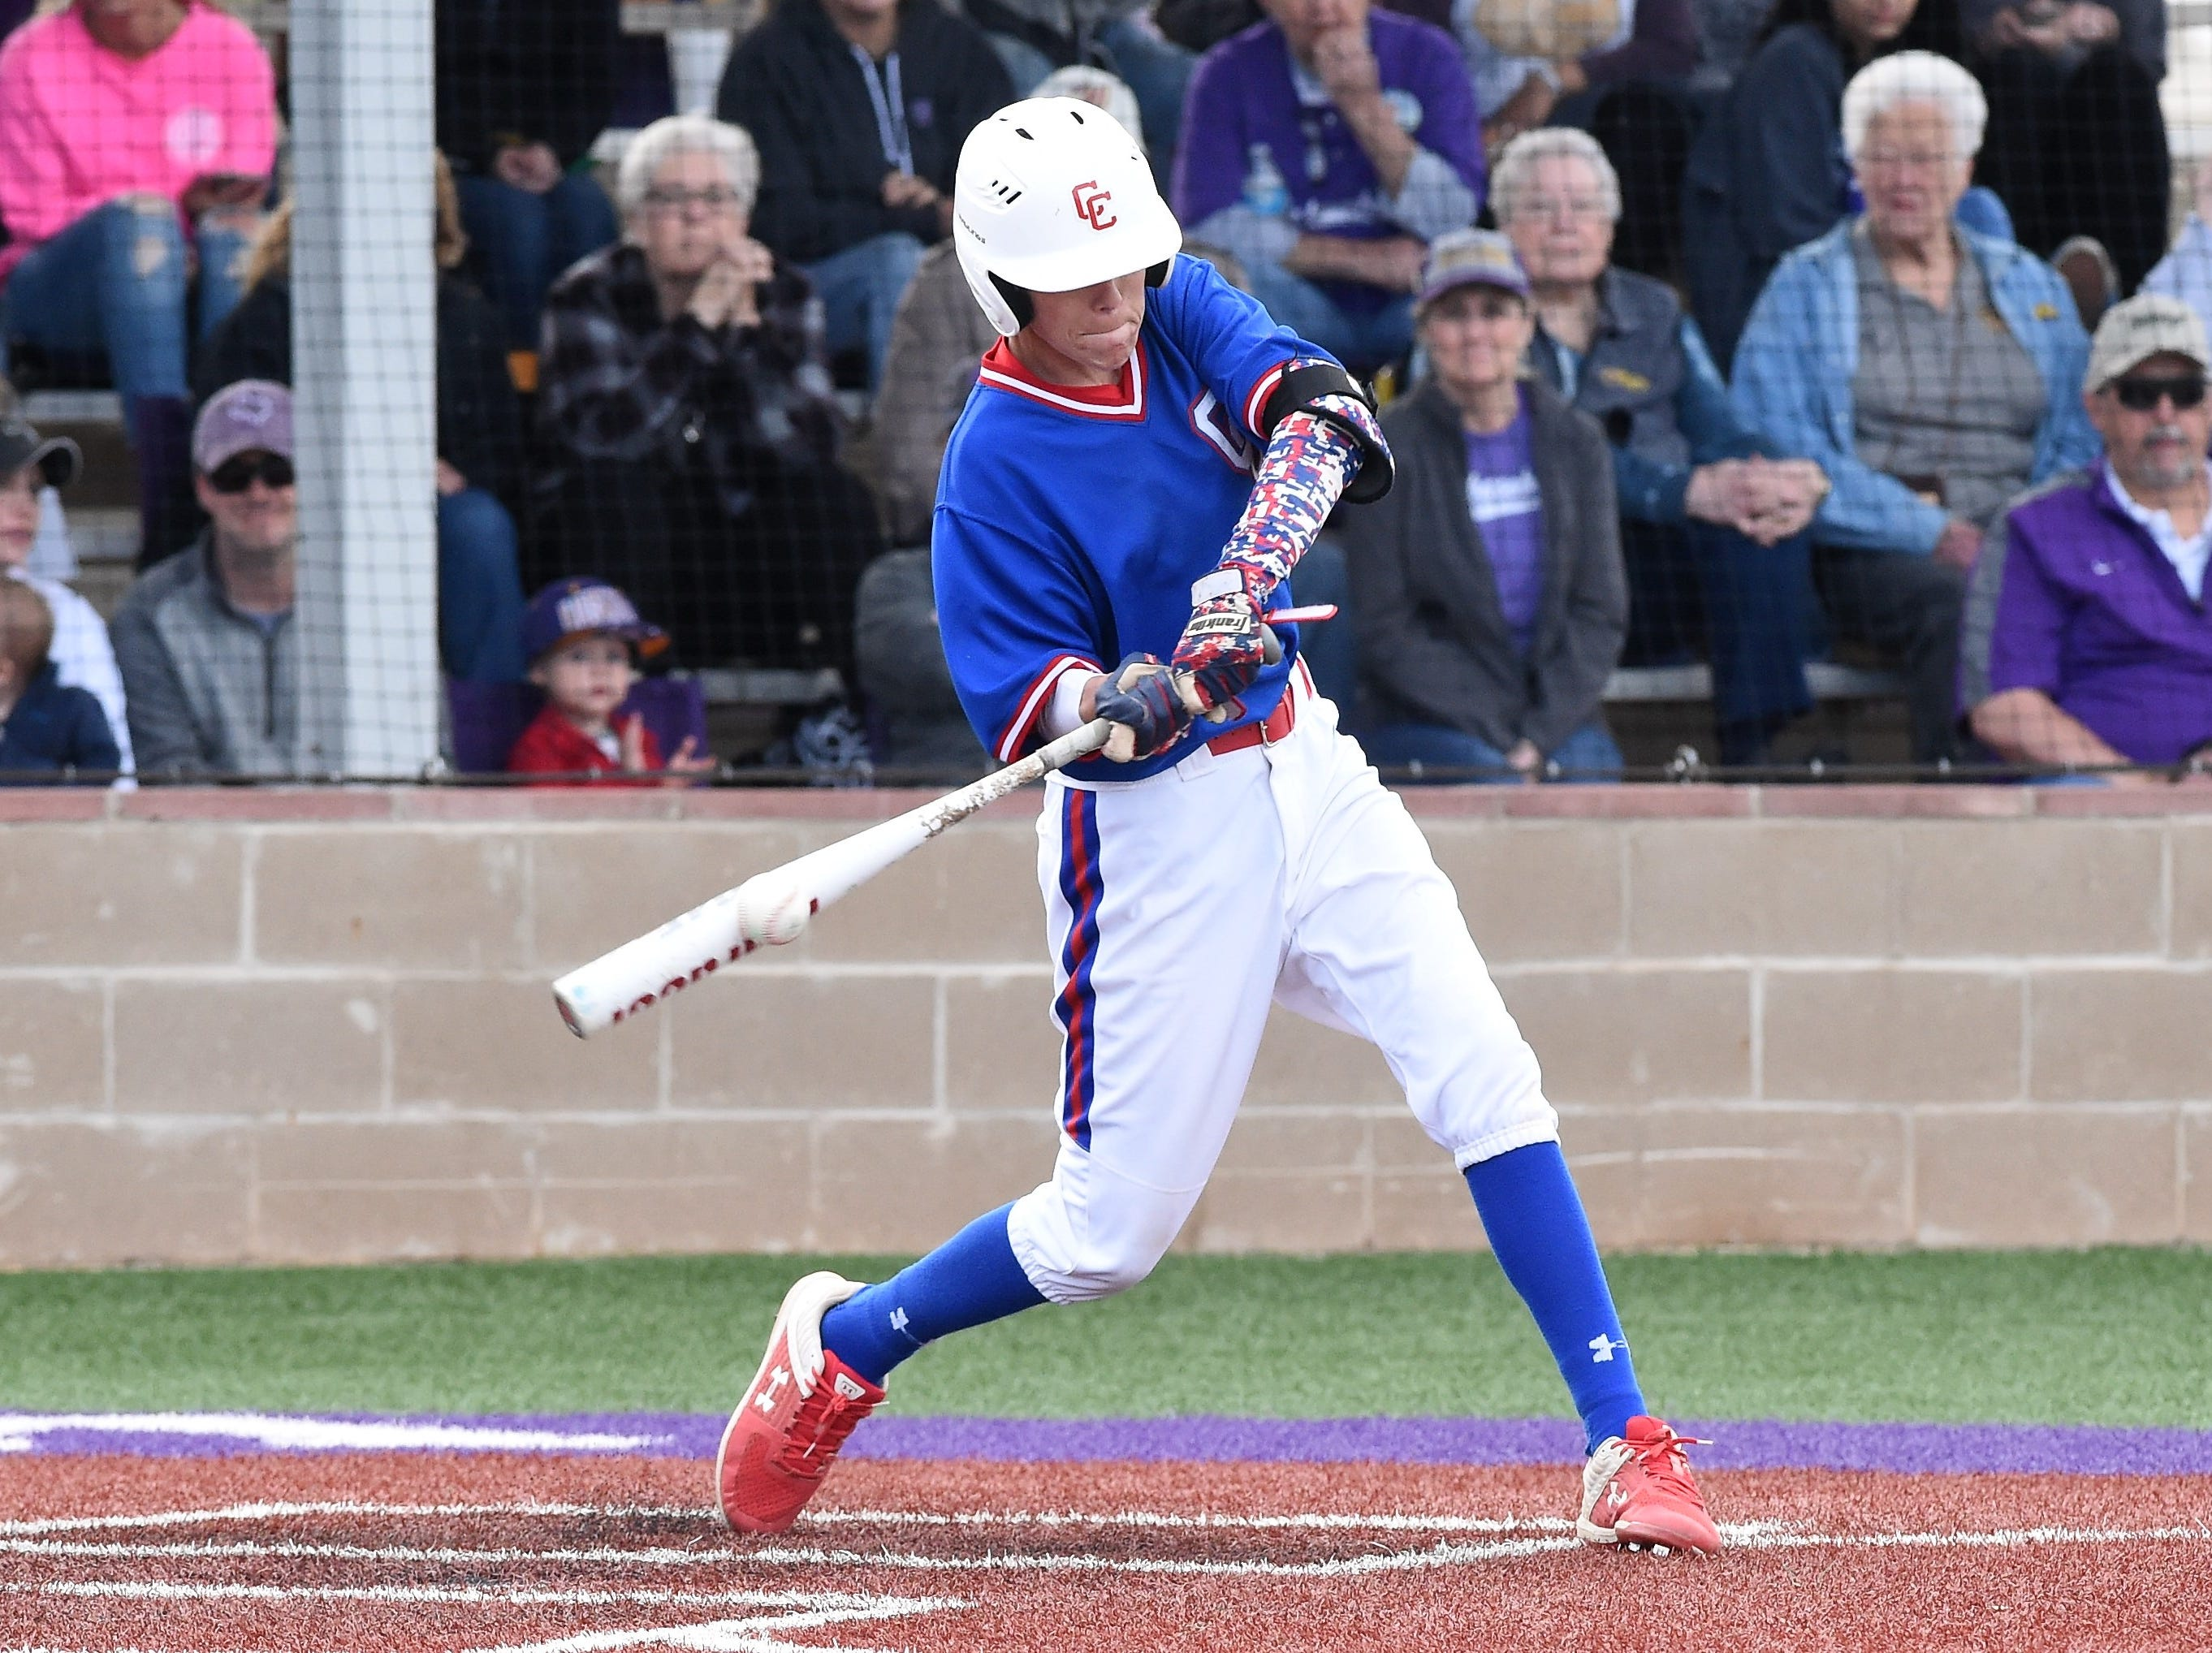 Cooper's Jack Keefer (2) connects on a base hit against Wylie at Bulldog Field on Friday, April 12, 2019. Keefer also drew two walks and scored in the 4-3 loss.